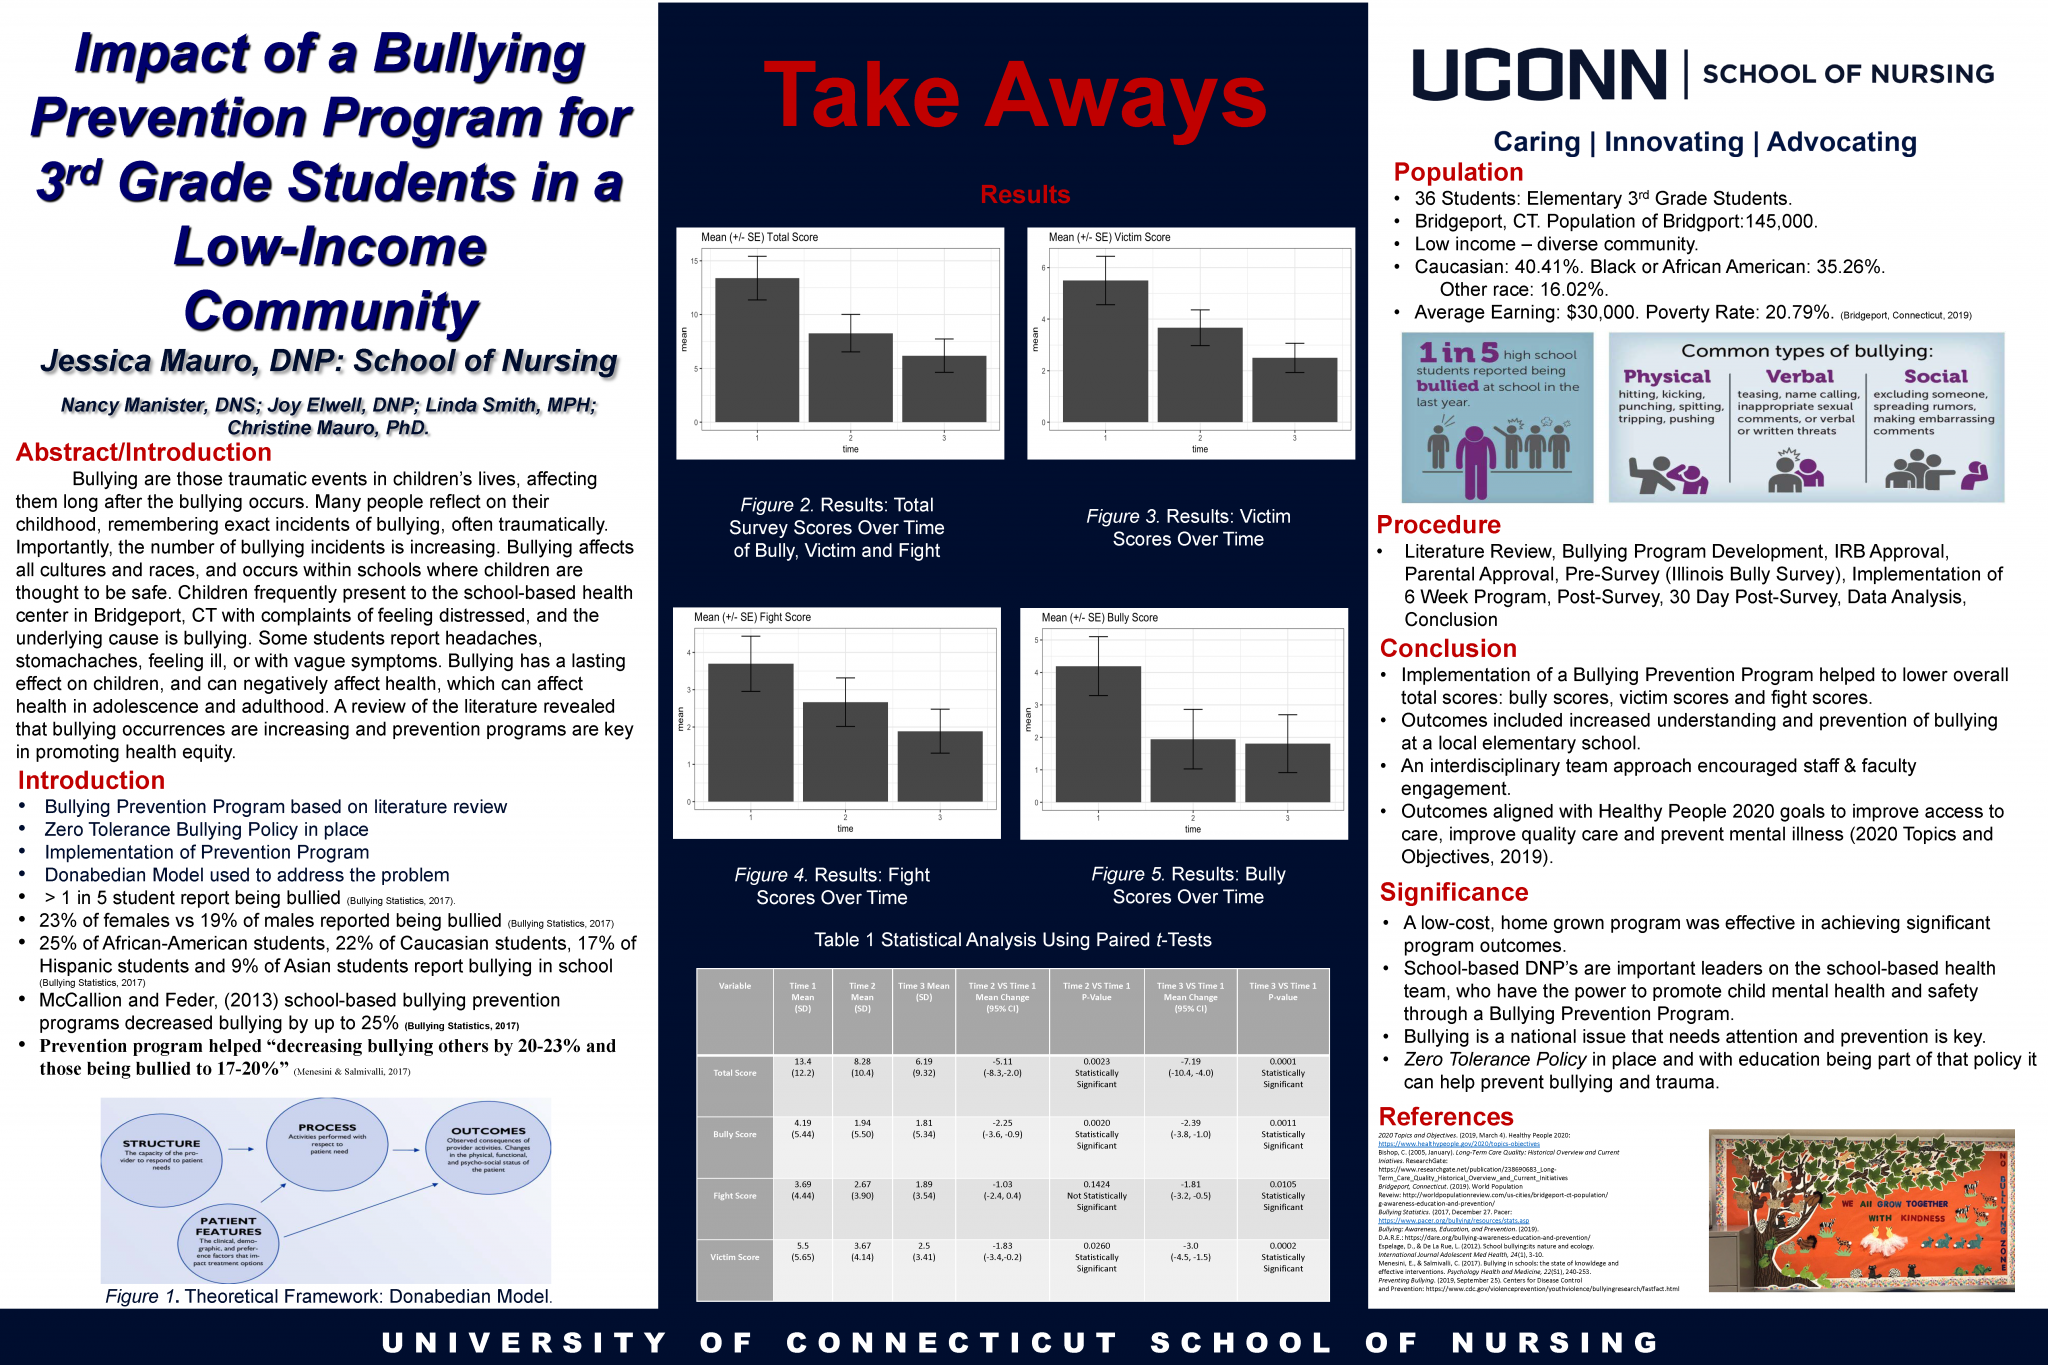 """Jessica Mauro Poster Presentation for """"Impact of a Bullying Prevention Program for 3rd Grade Students in a Low-Income Community"""""""